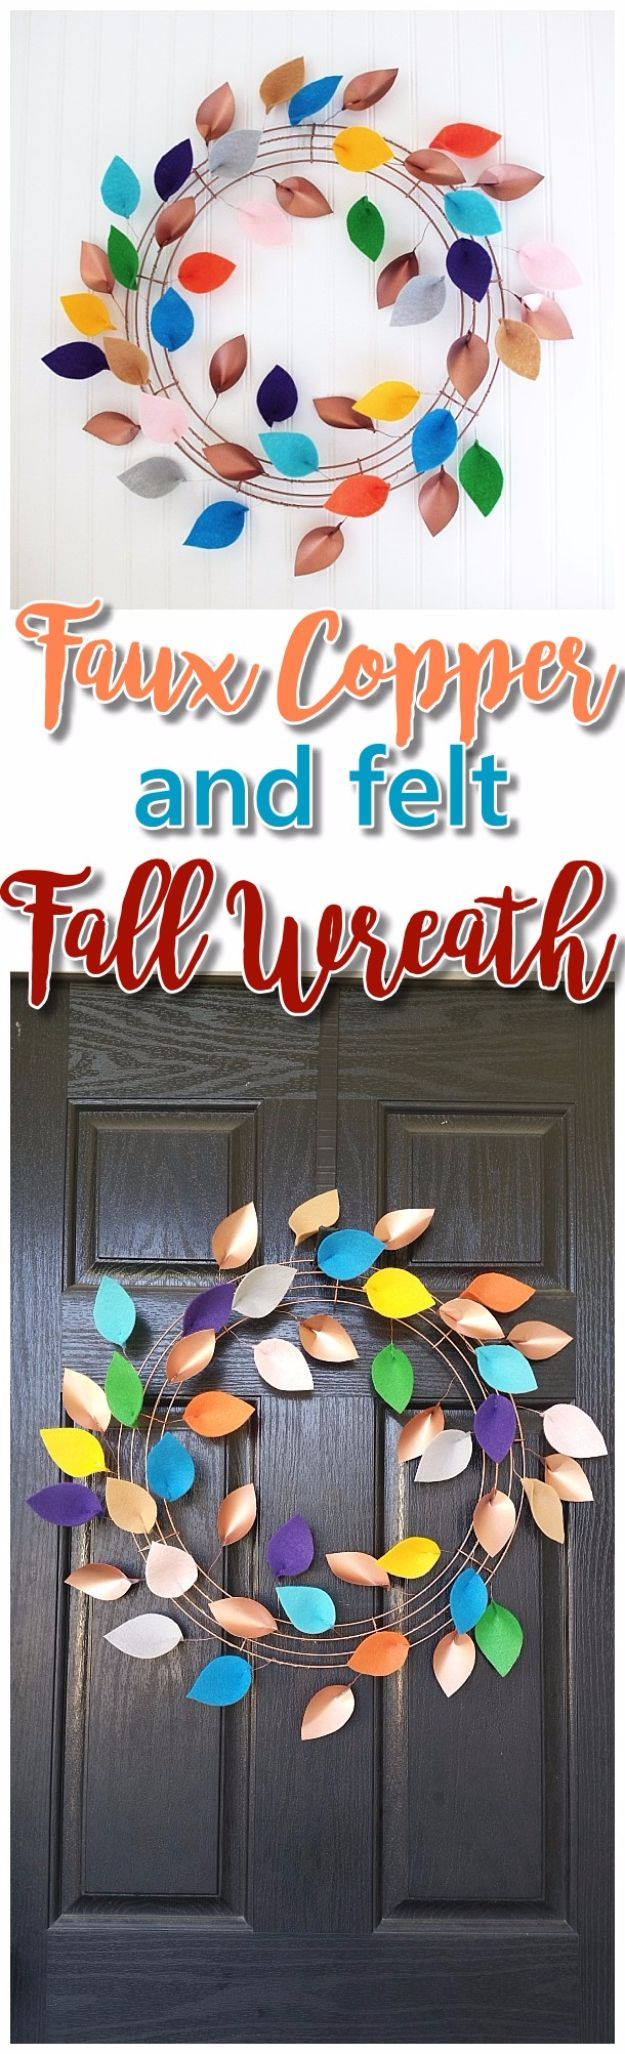 Best Crafts for Fall Decorating - DIY Faux Copper Paper and Felt Leaves Fall Wreath - DIY Home Decor, Mason Jar Ideas, Dollar Store Crafts, Rustic Pumpkin Ideas, Wreaths, Candles and Wall Art, Centerpieces, Wedding Decorations, Homemade Gifts, Craft Projects with Leaves, Flowers and Burlap, Painted Art, Candles and Luminaries for Cool Home Decor - Quick and Easy Projects With Step by Step Tutorials and Instructions http://diyjoy.com/best-fall-decorating-ideas